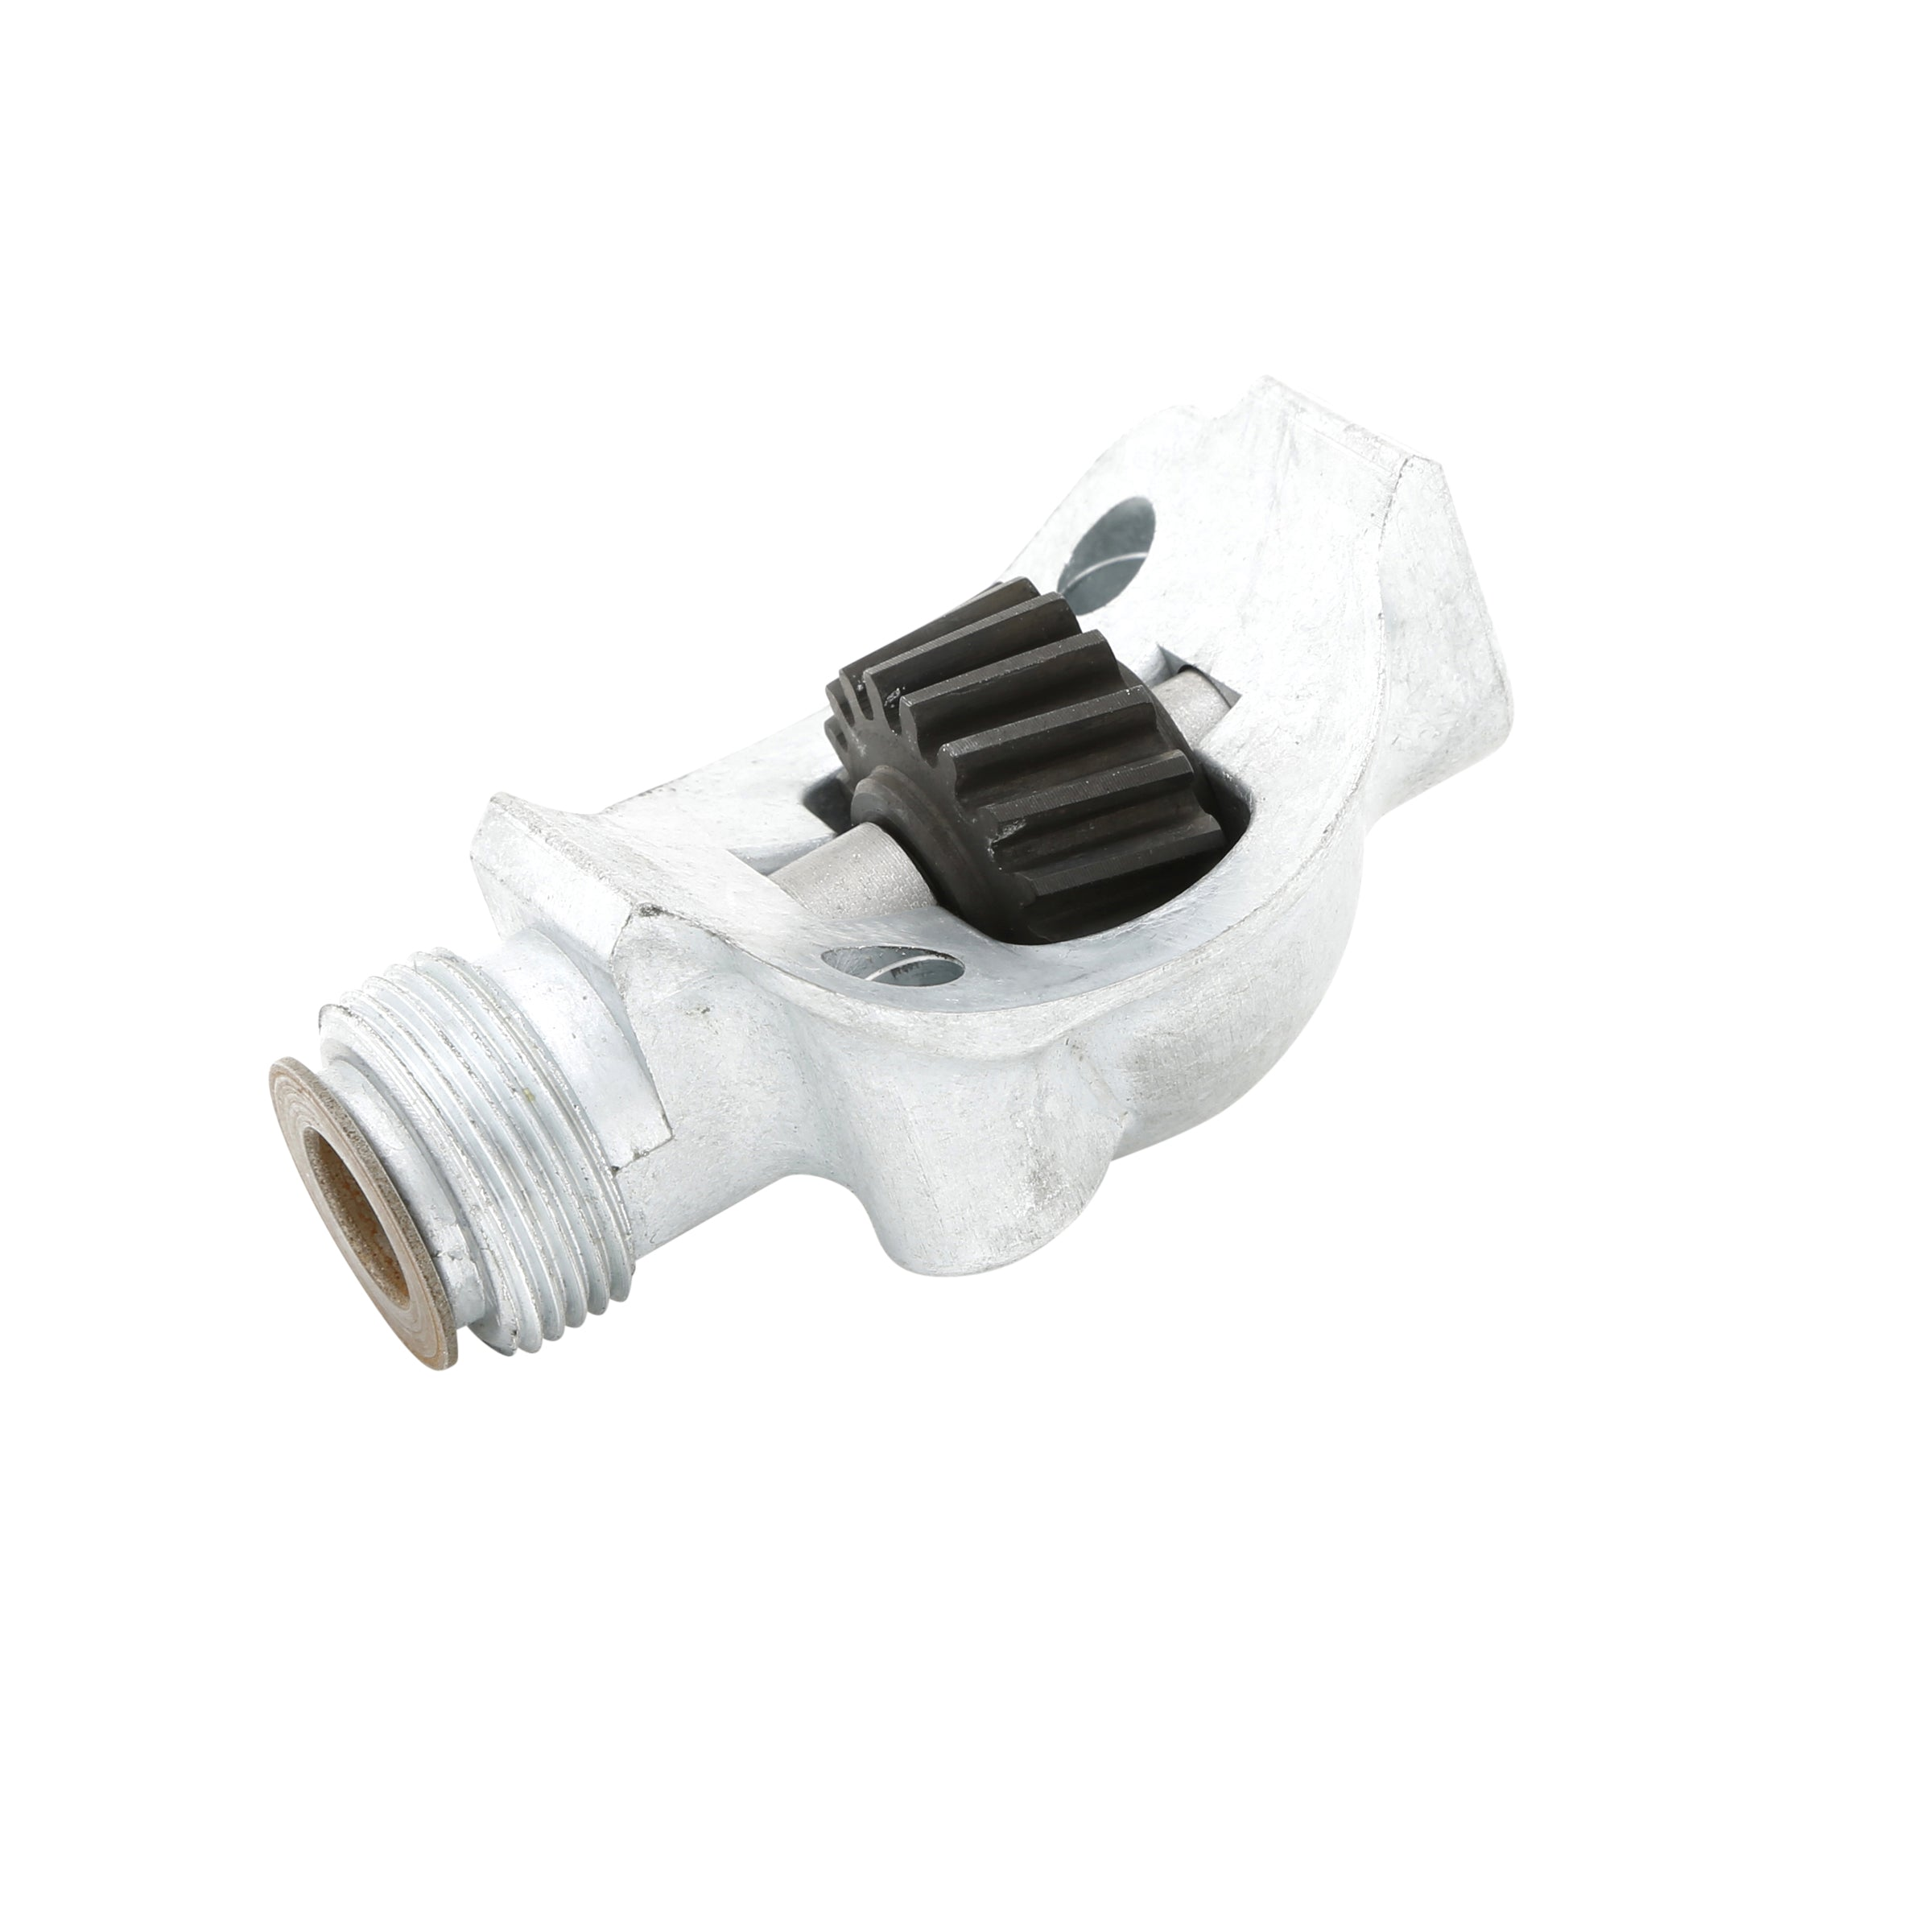 Speedometer Drive Gear & Case (3.78 Rear End Round) • 1928-29 Model A Ford